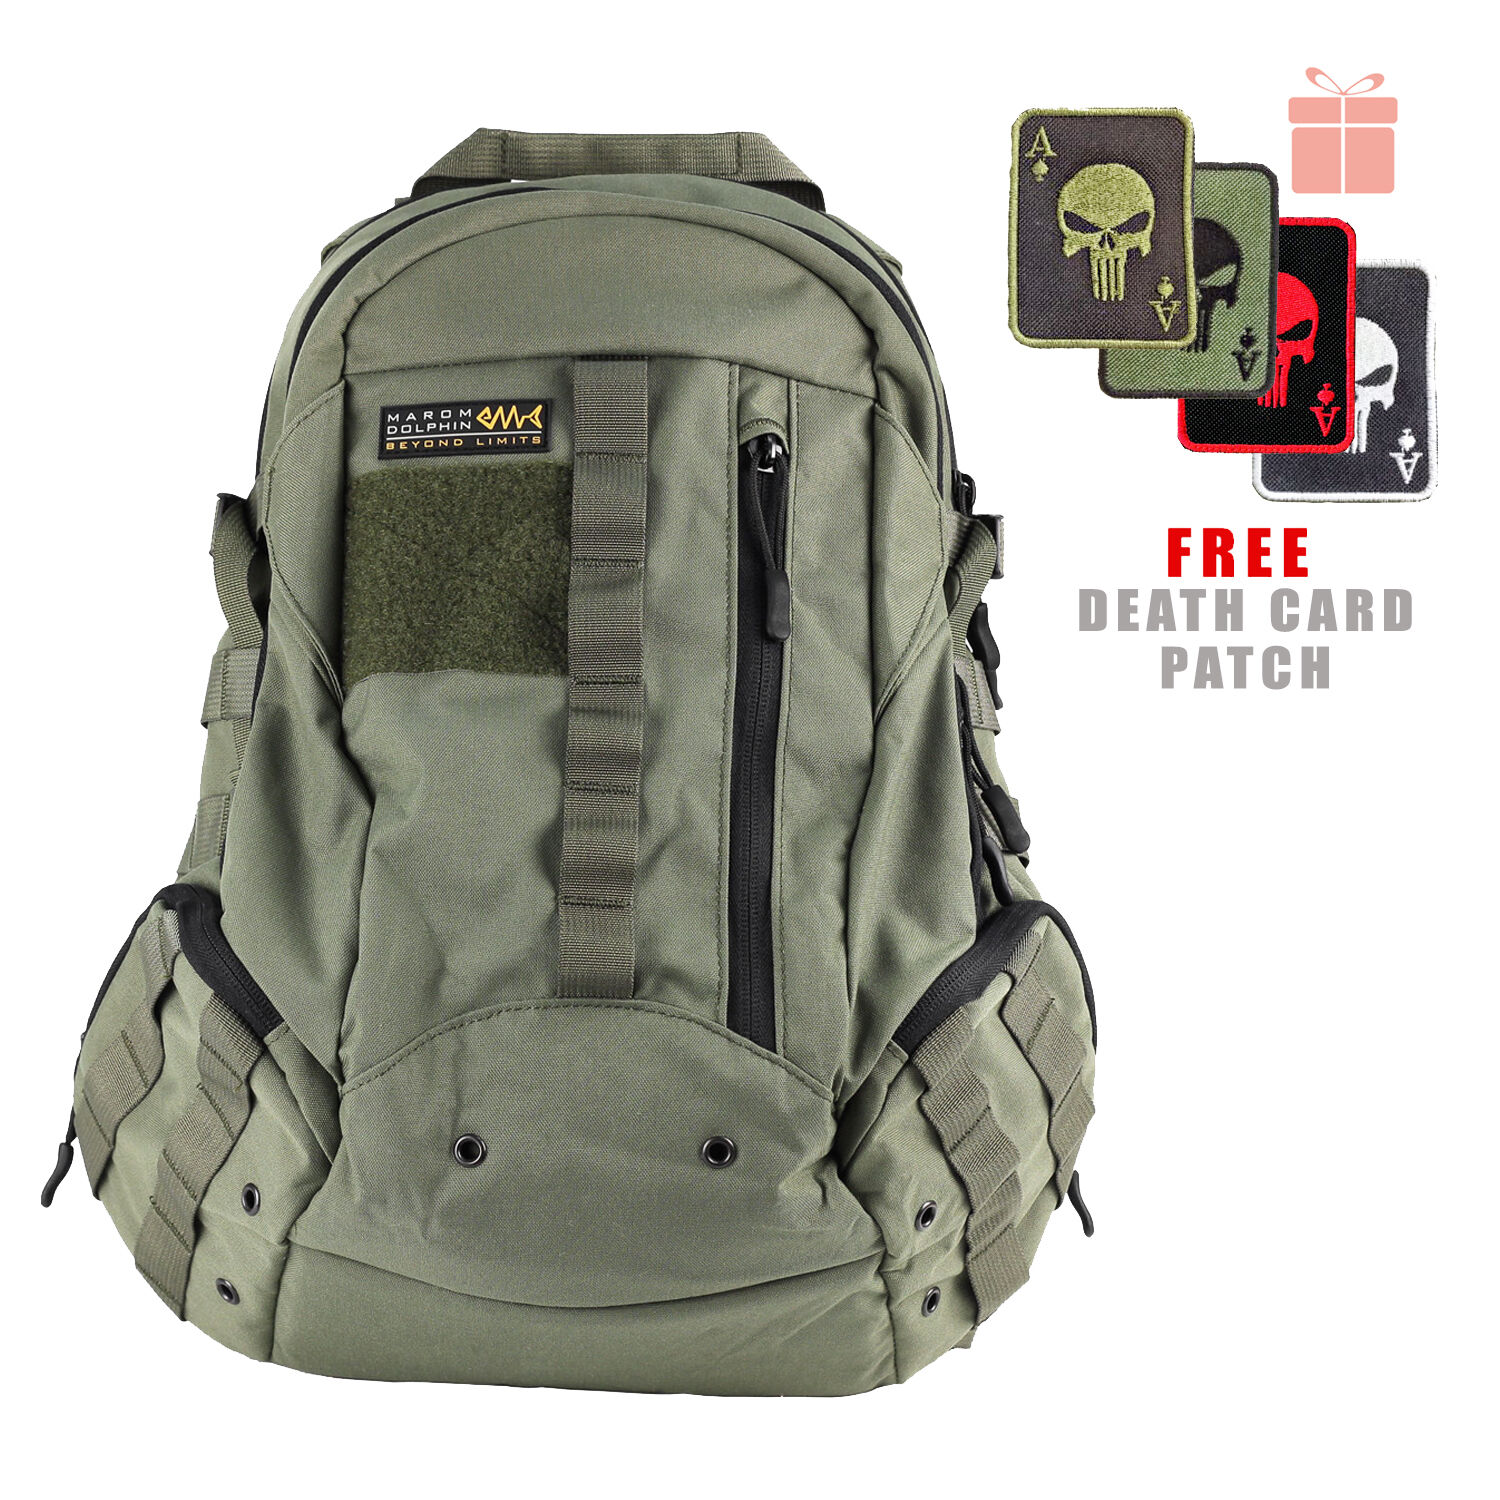 Marom Dolphin Newly Designed Tactical EGG Assault Bag w  Free Moral Patch BG4400